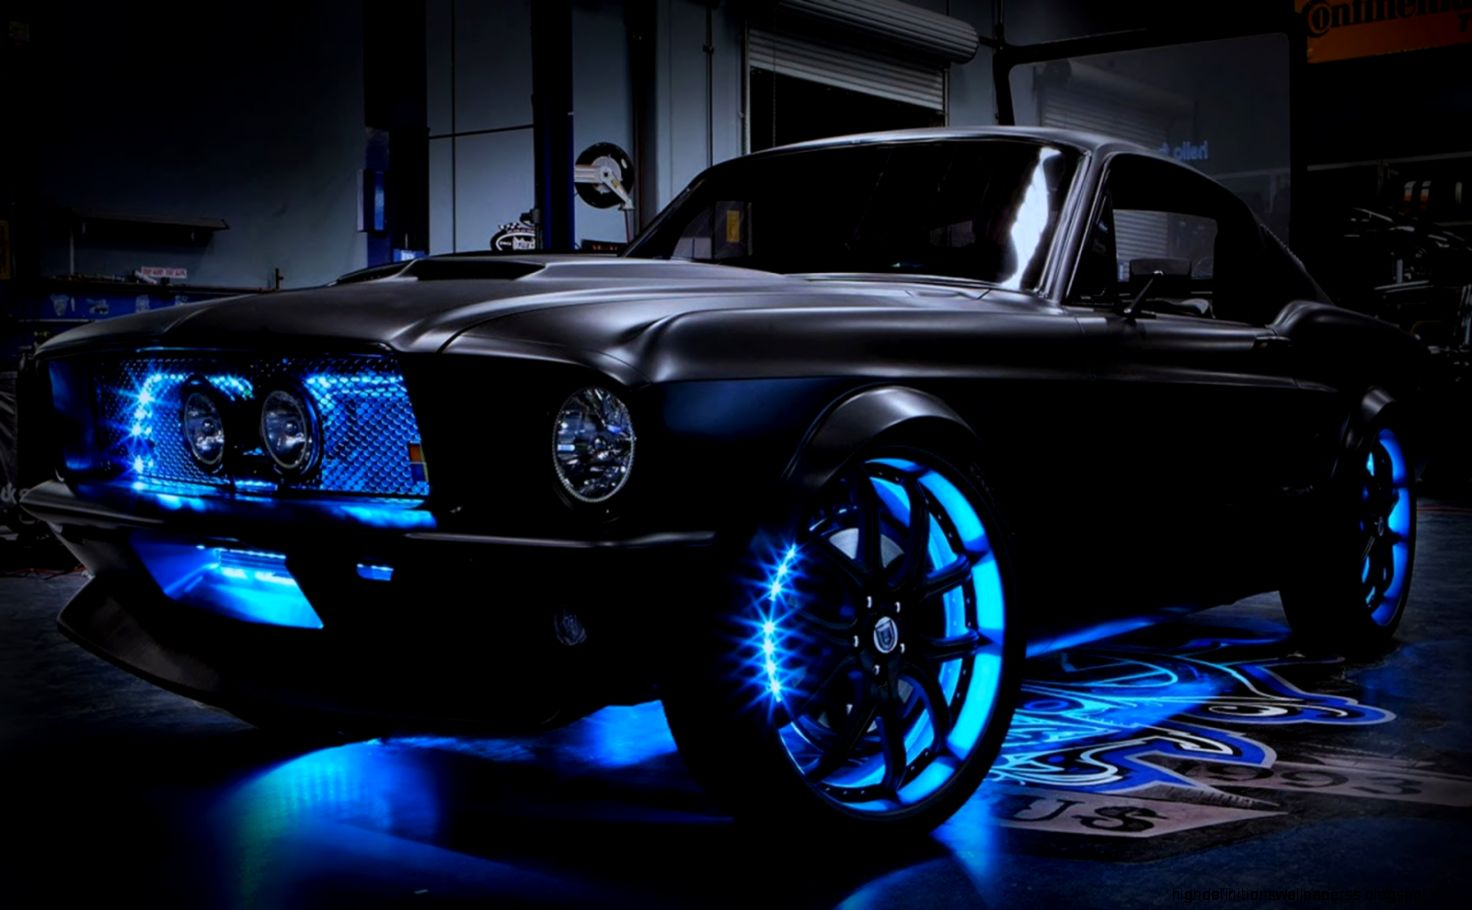 Cool Ford Mustang Sports Cars Wallpapers Hd High